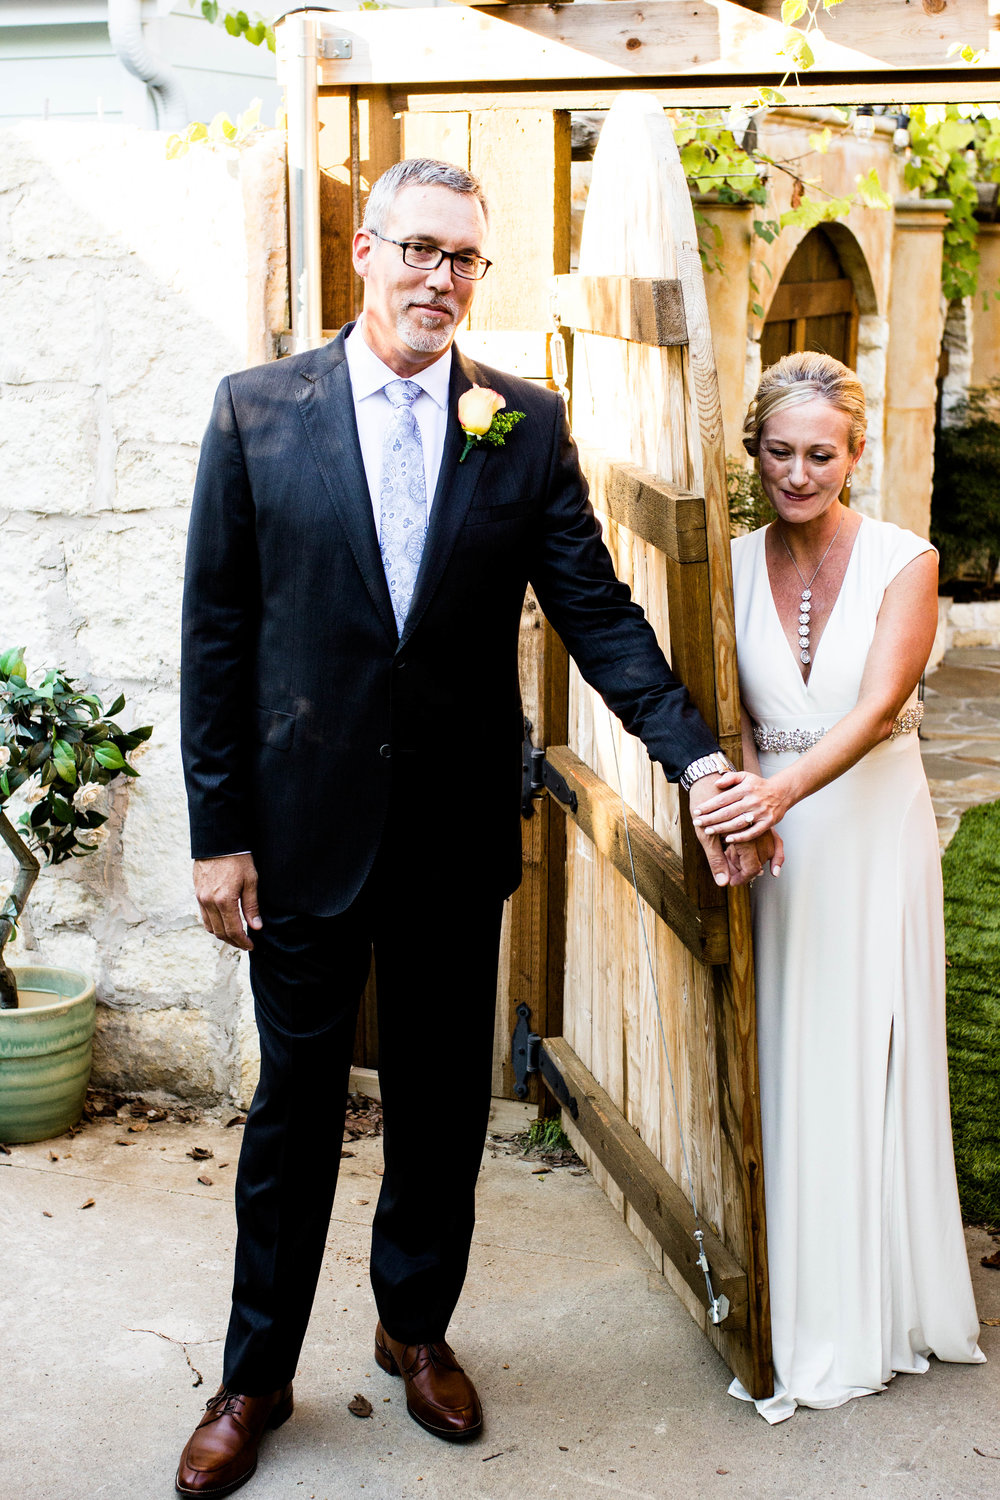 """Dave and Rebecca were so excited to hear each other's voices a few minutes before walking down the aisle. Their """"First Touch"""" was so tender."""